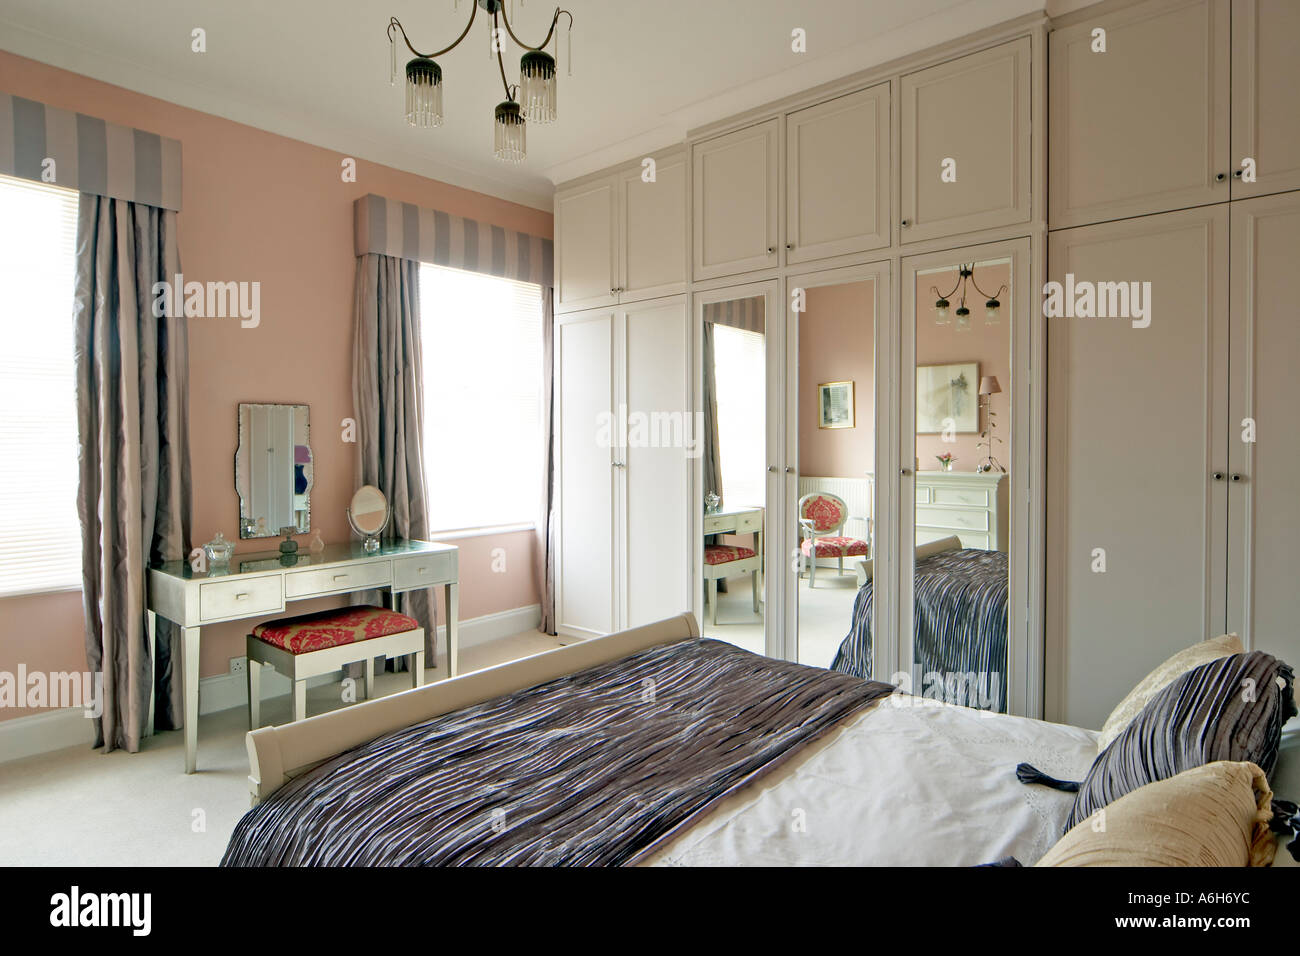 Bedroom With Bed Furniture Cupboards And Mirror In London House Styled By  Interior Designer Eve Wilder